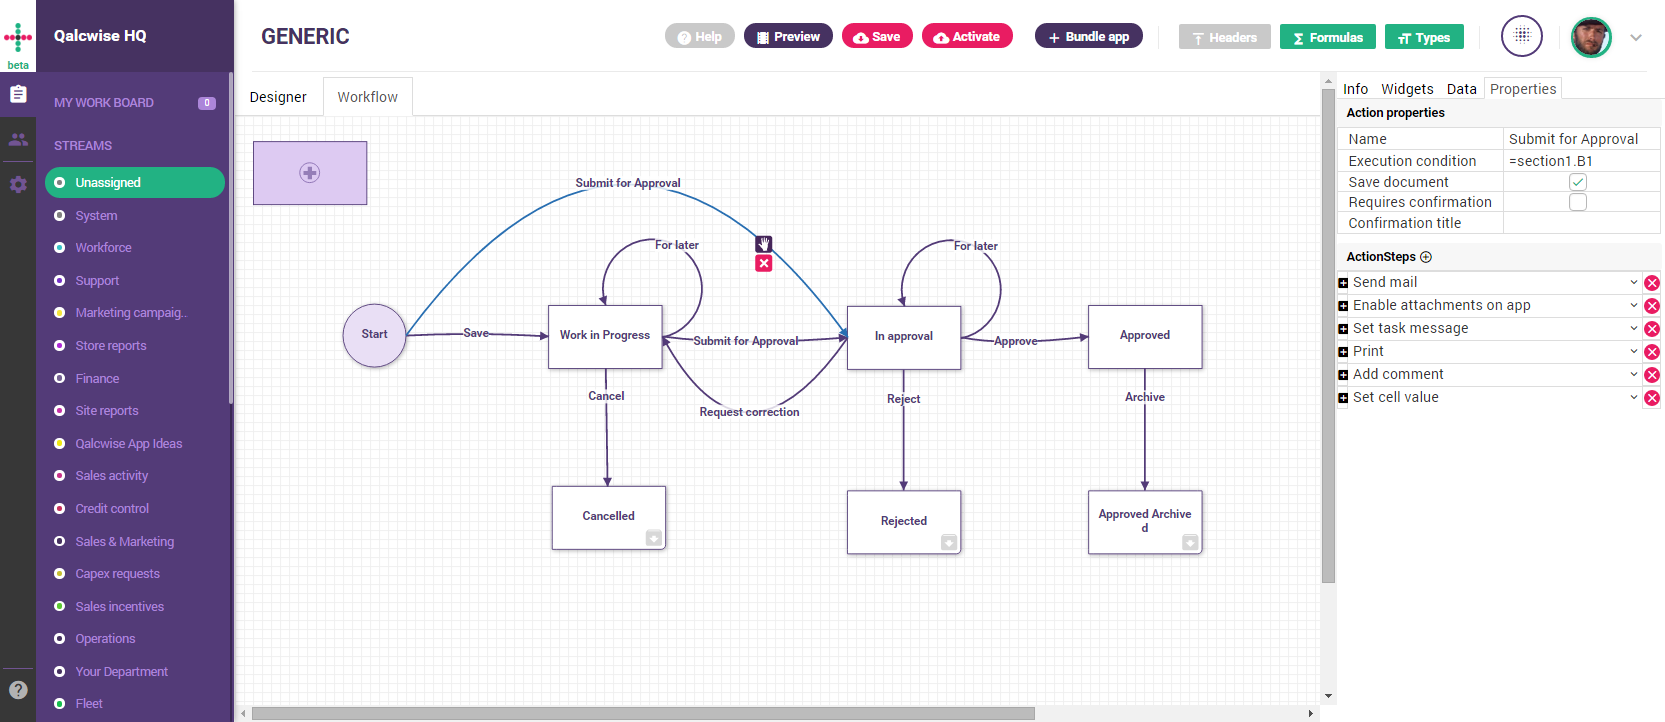 Workflow visualization